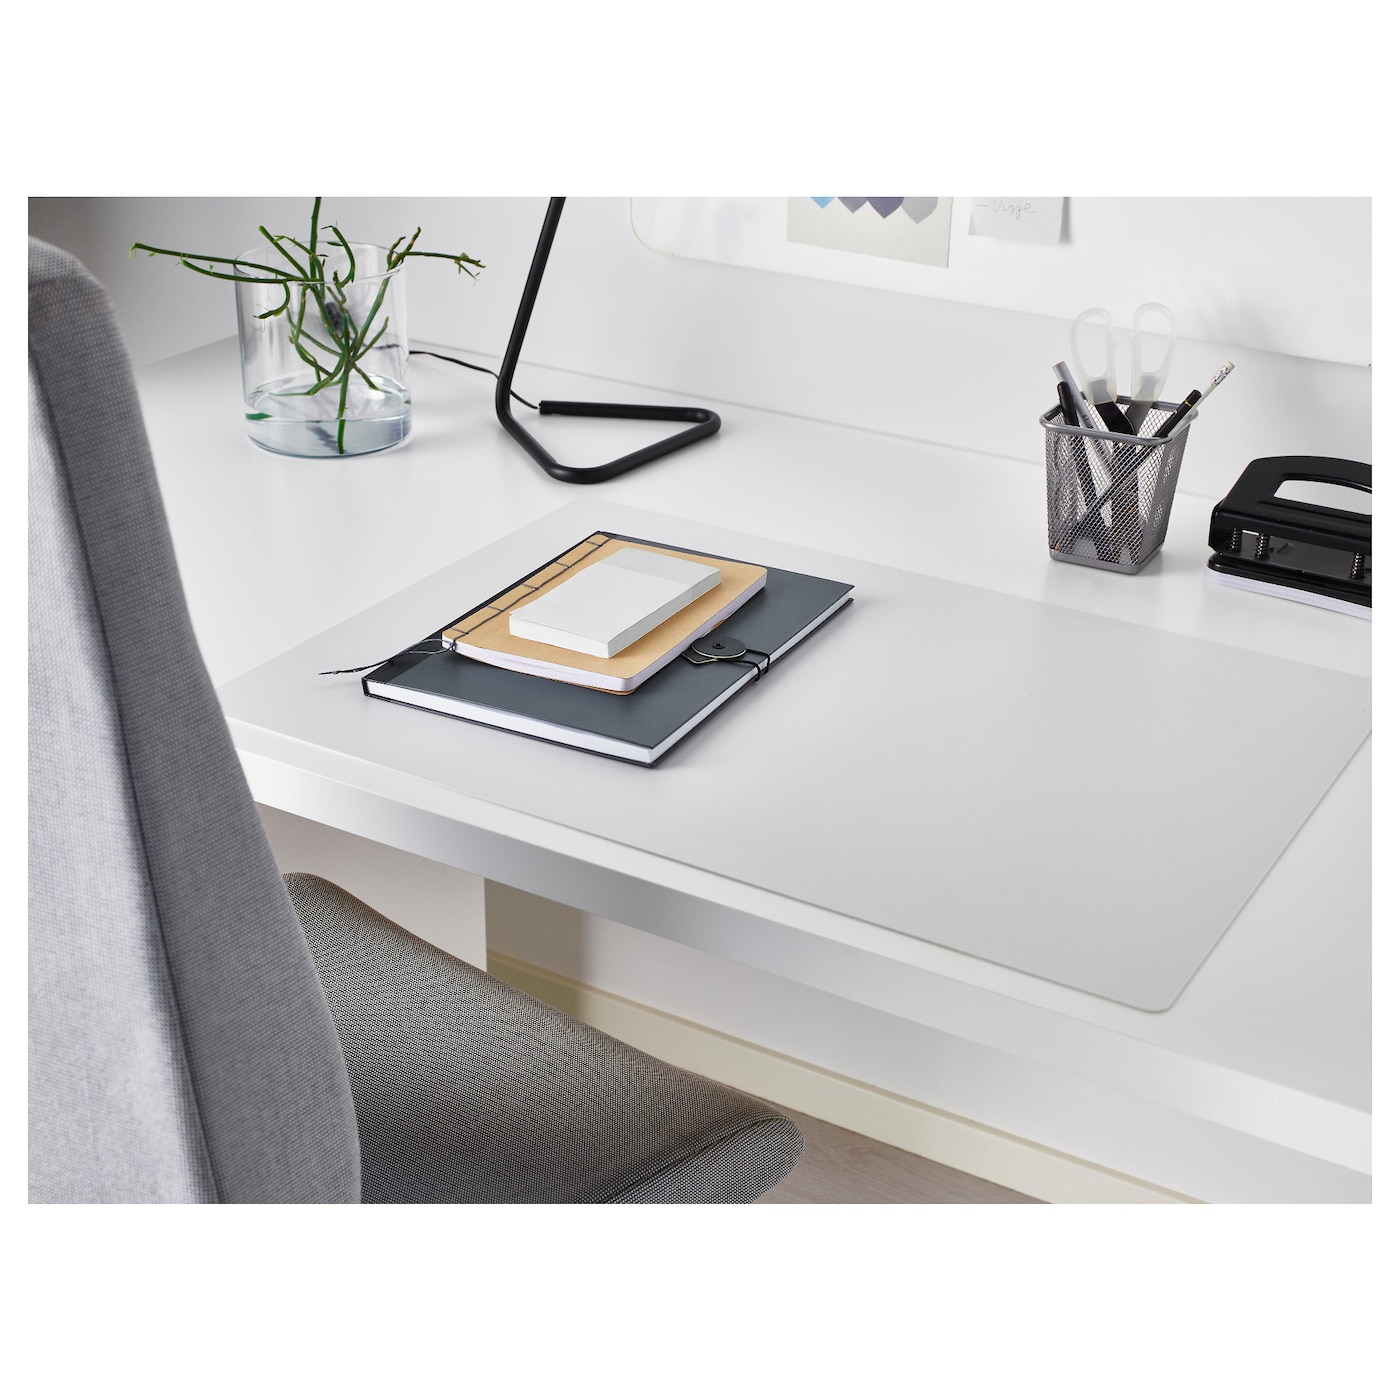 IKEA SKRUTT Desk Pad Design Ideas